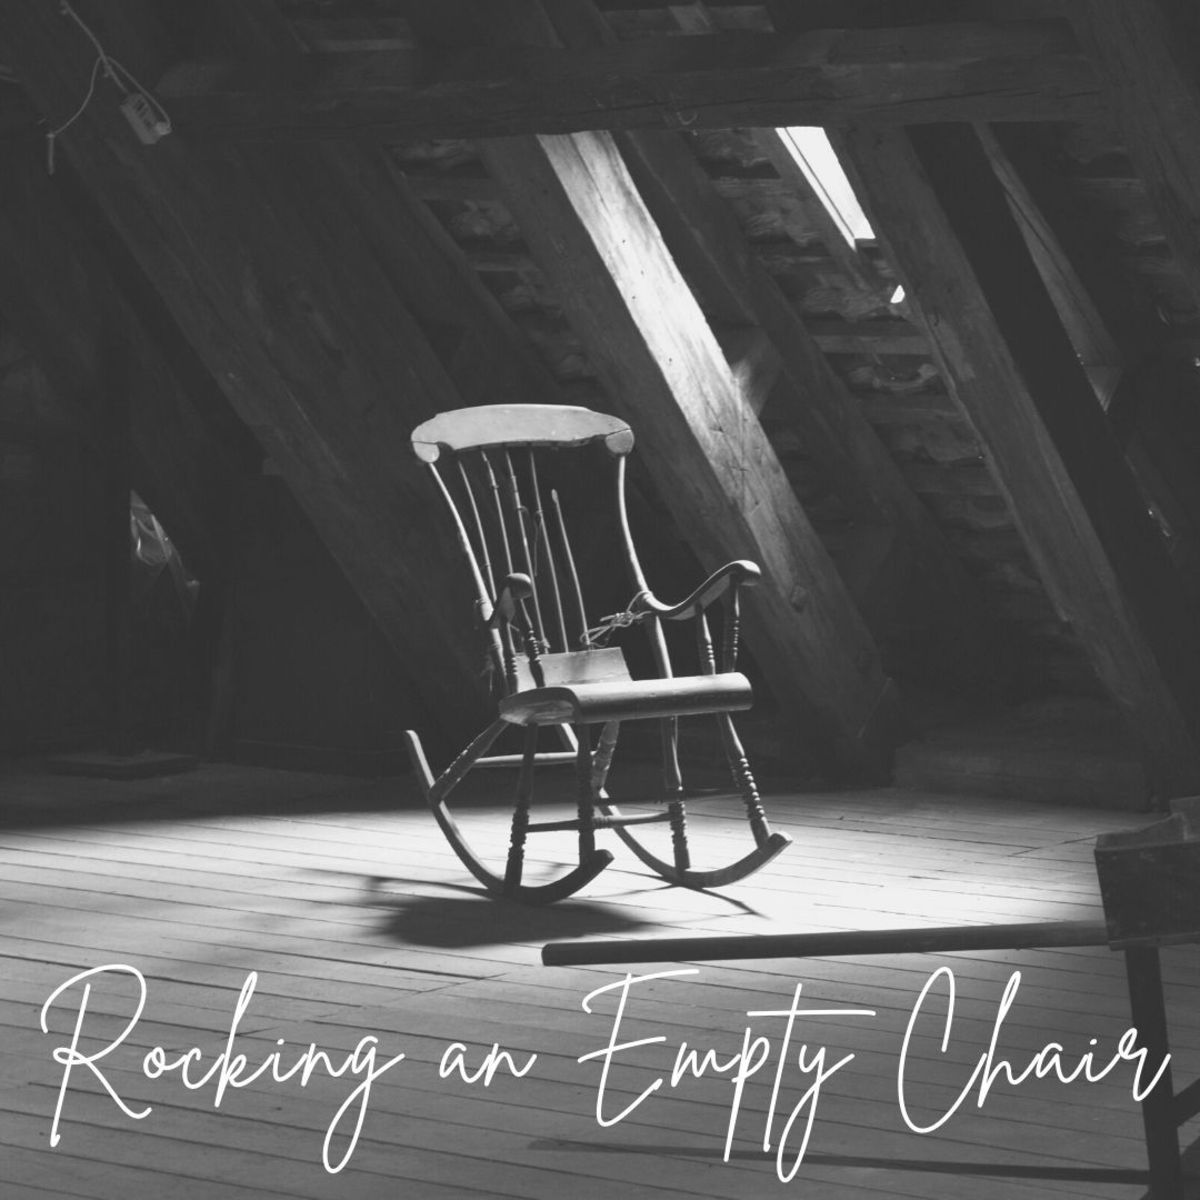 Rocking an empty chair is believed by some to bring bad luck to the person who normally occupies it.